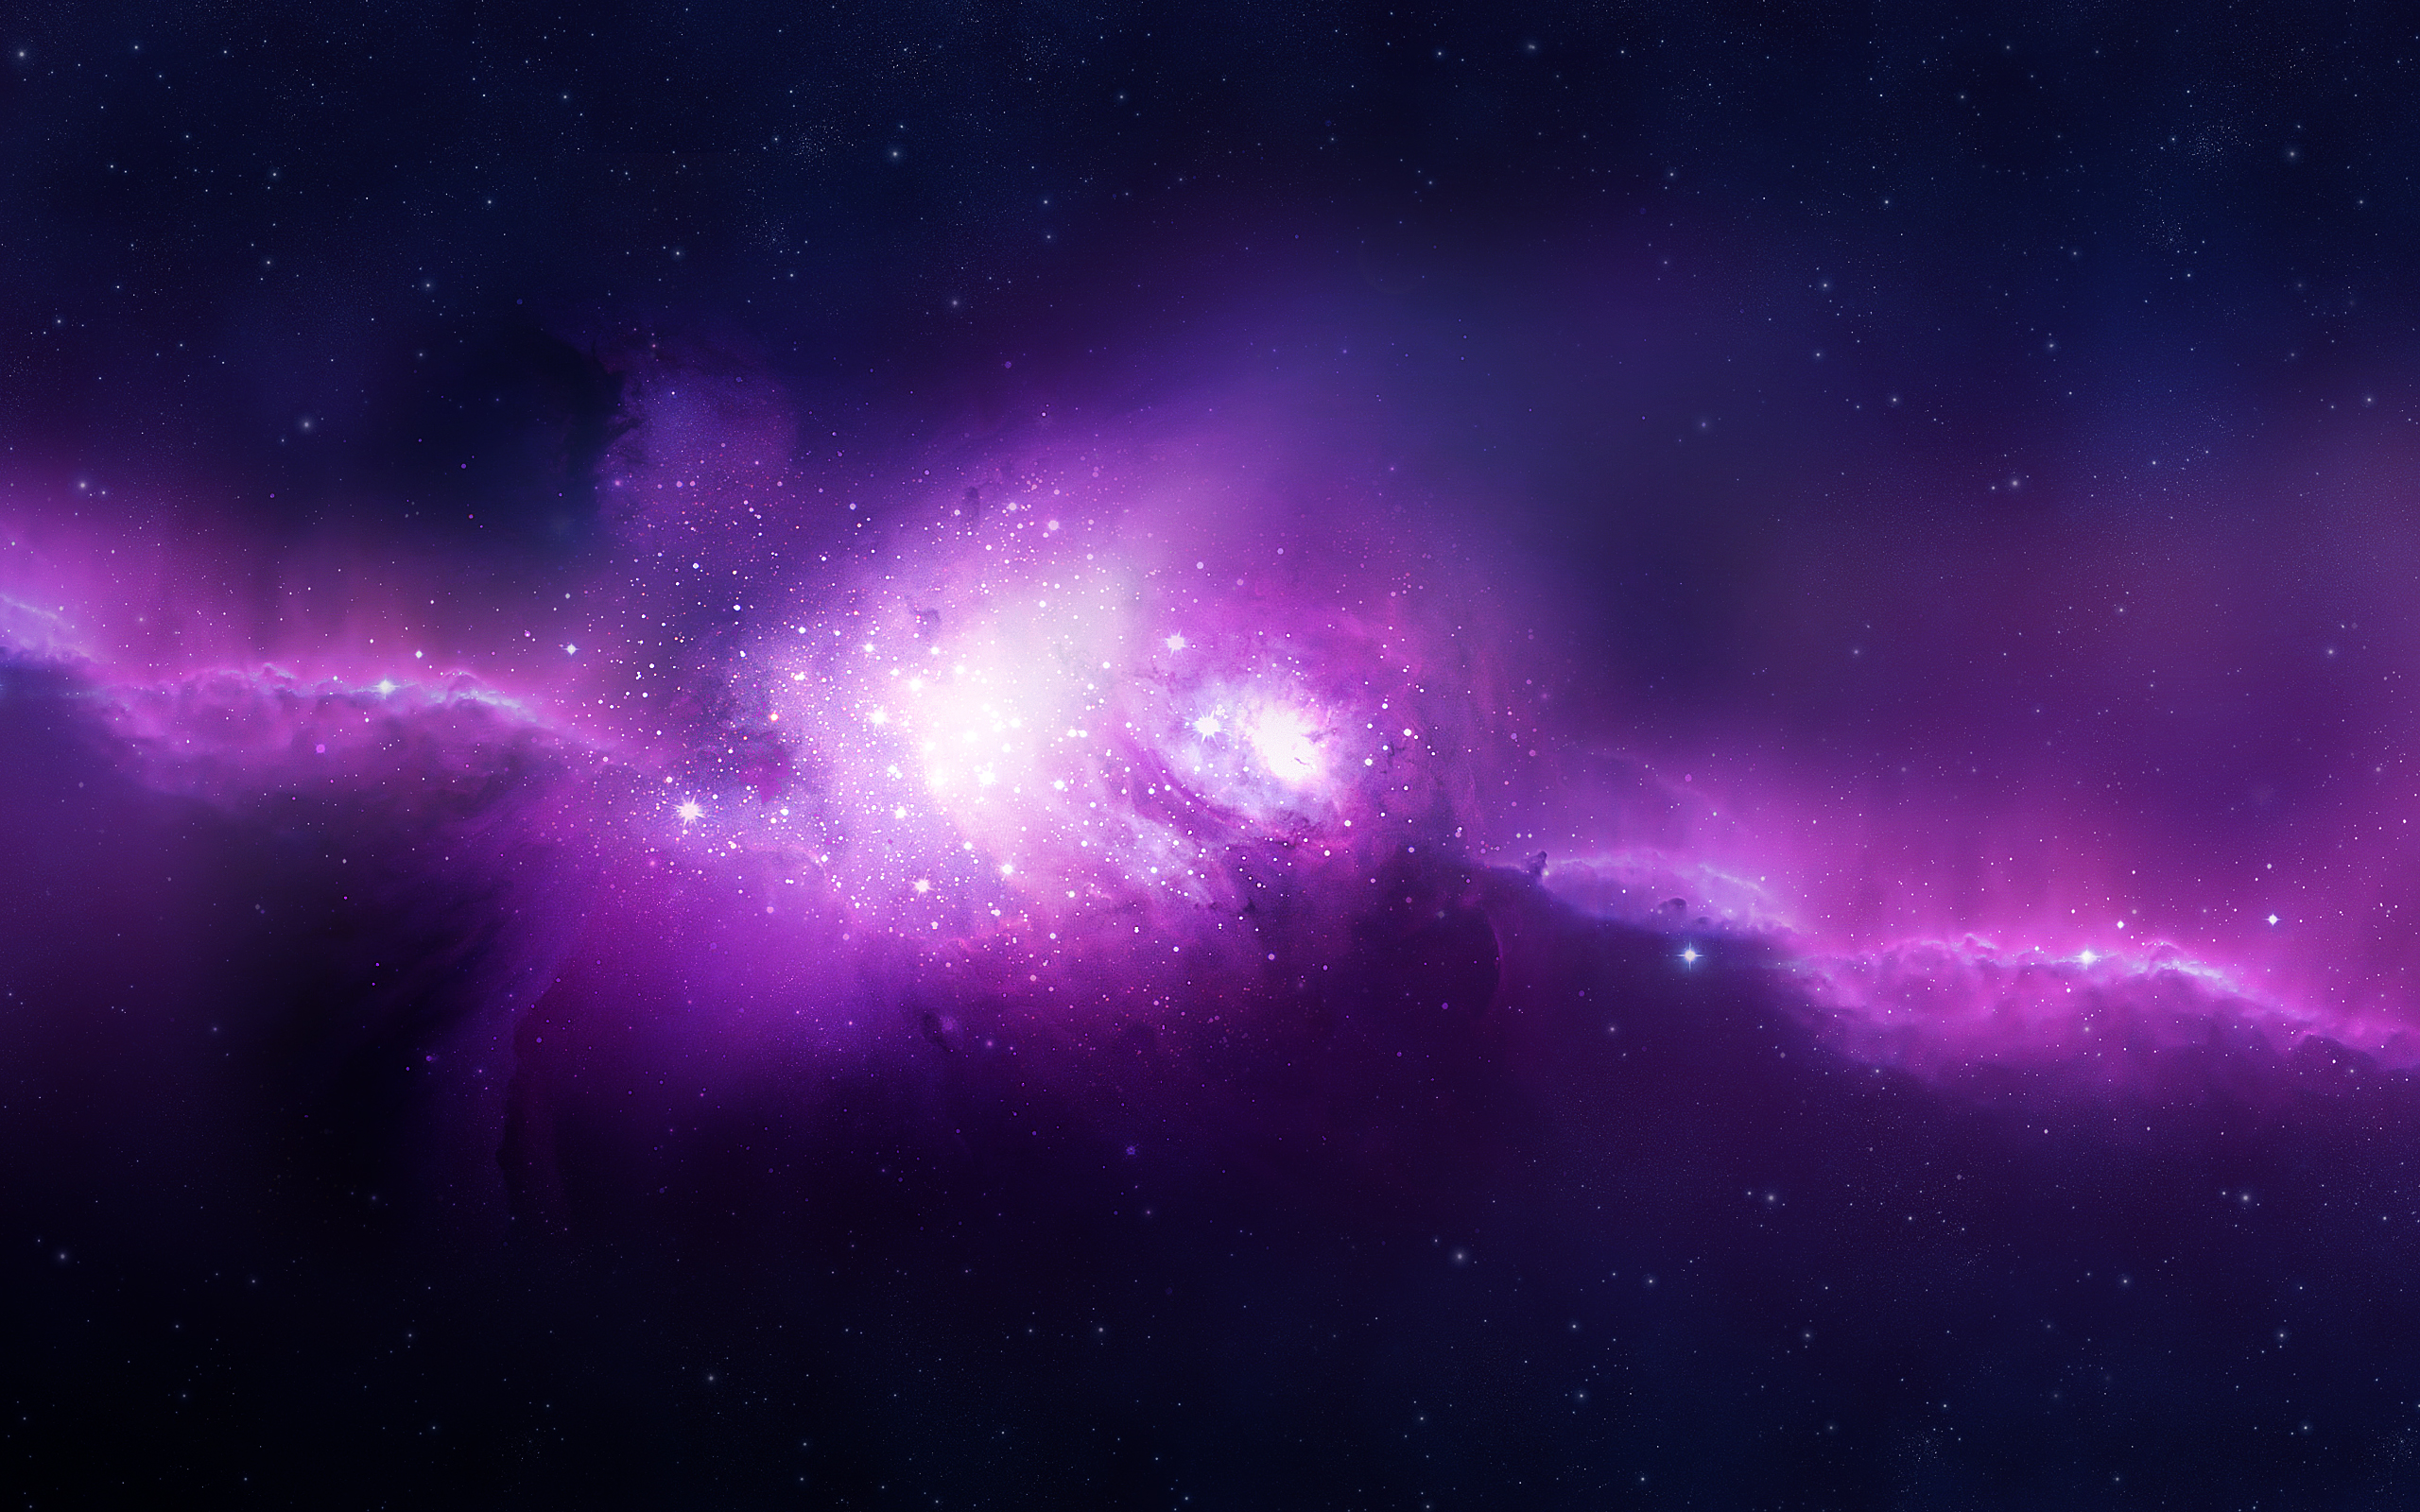 Space Nebulae Wallpapers HD Wallpapers 2560x1600